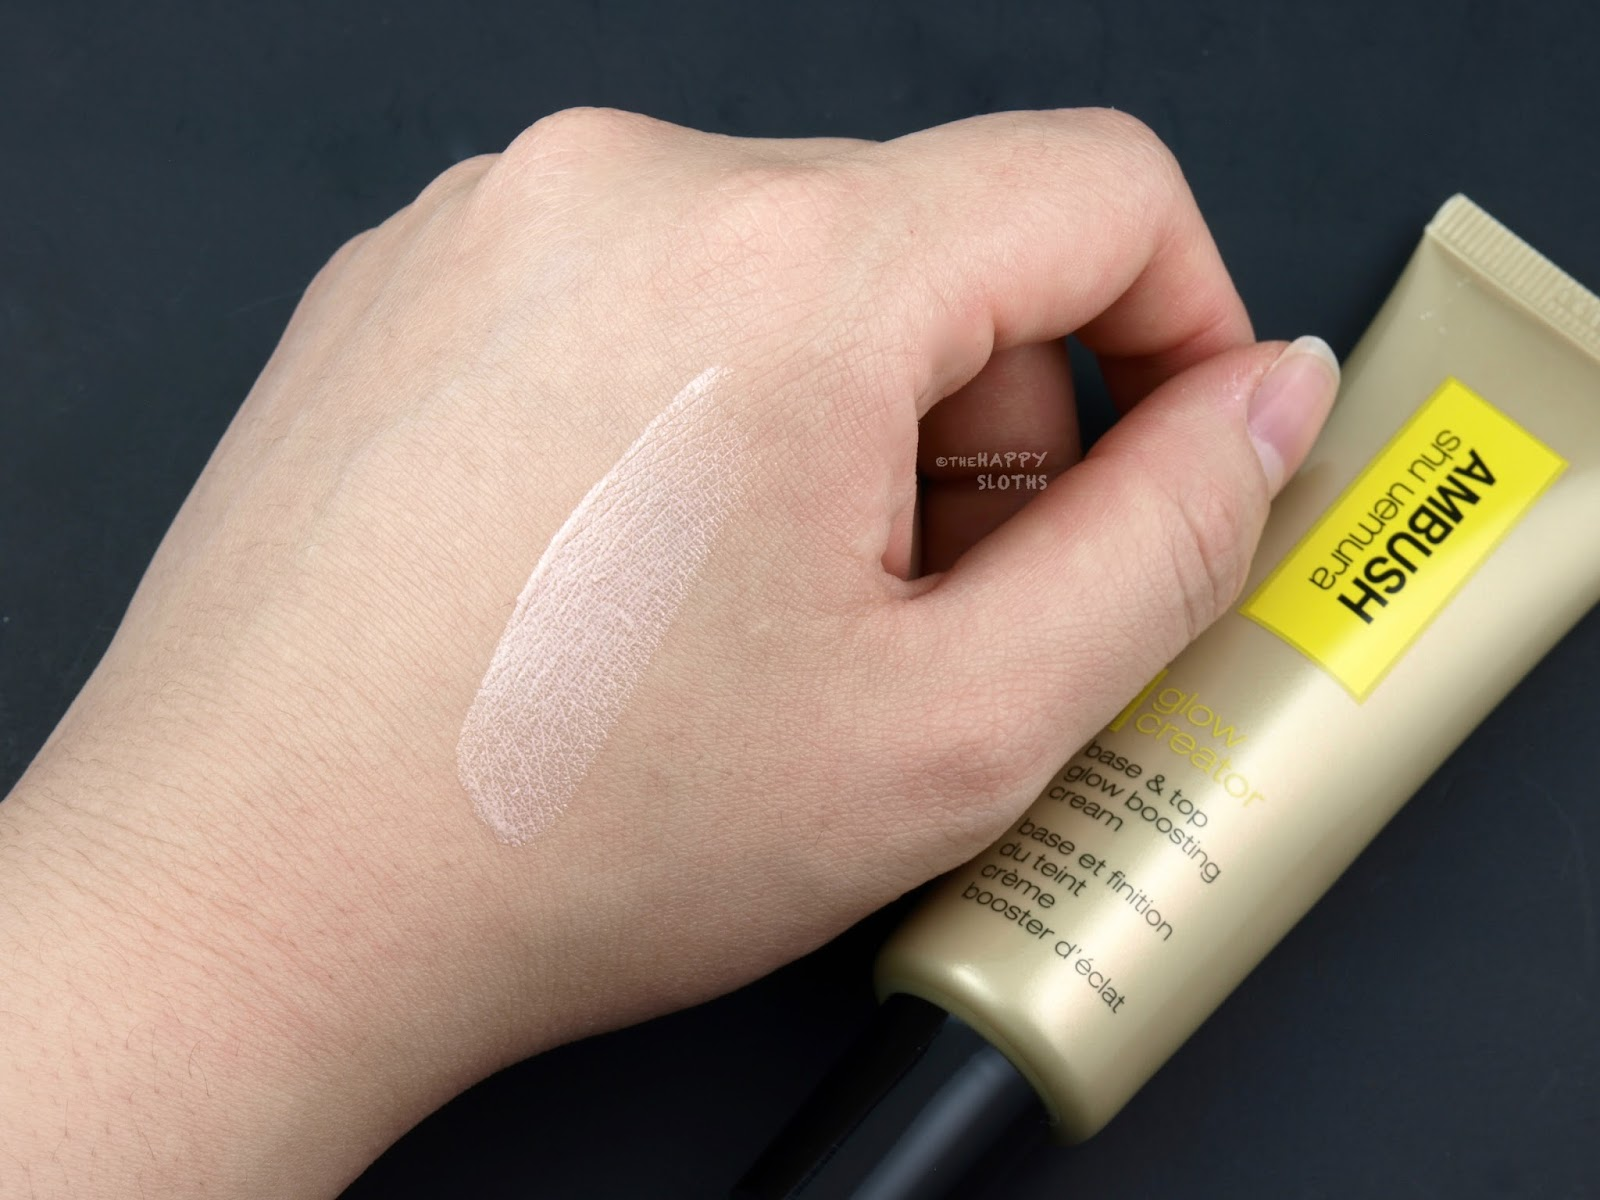 Shu Uemura x AMBUSH Collection | Glow Creator: Review and Swatches